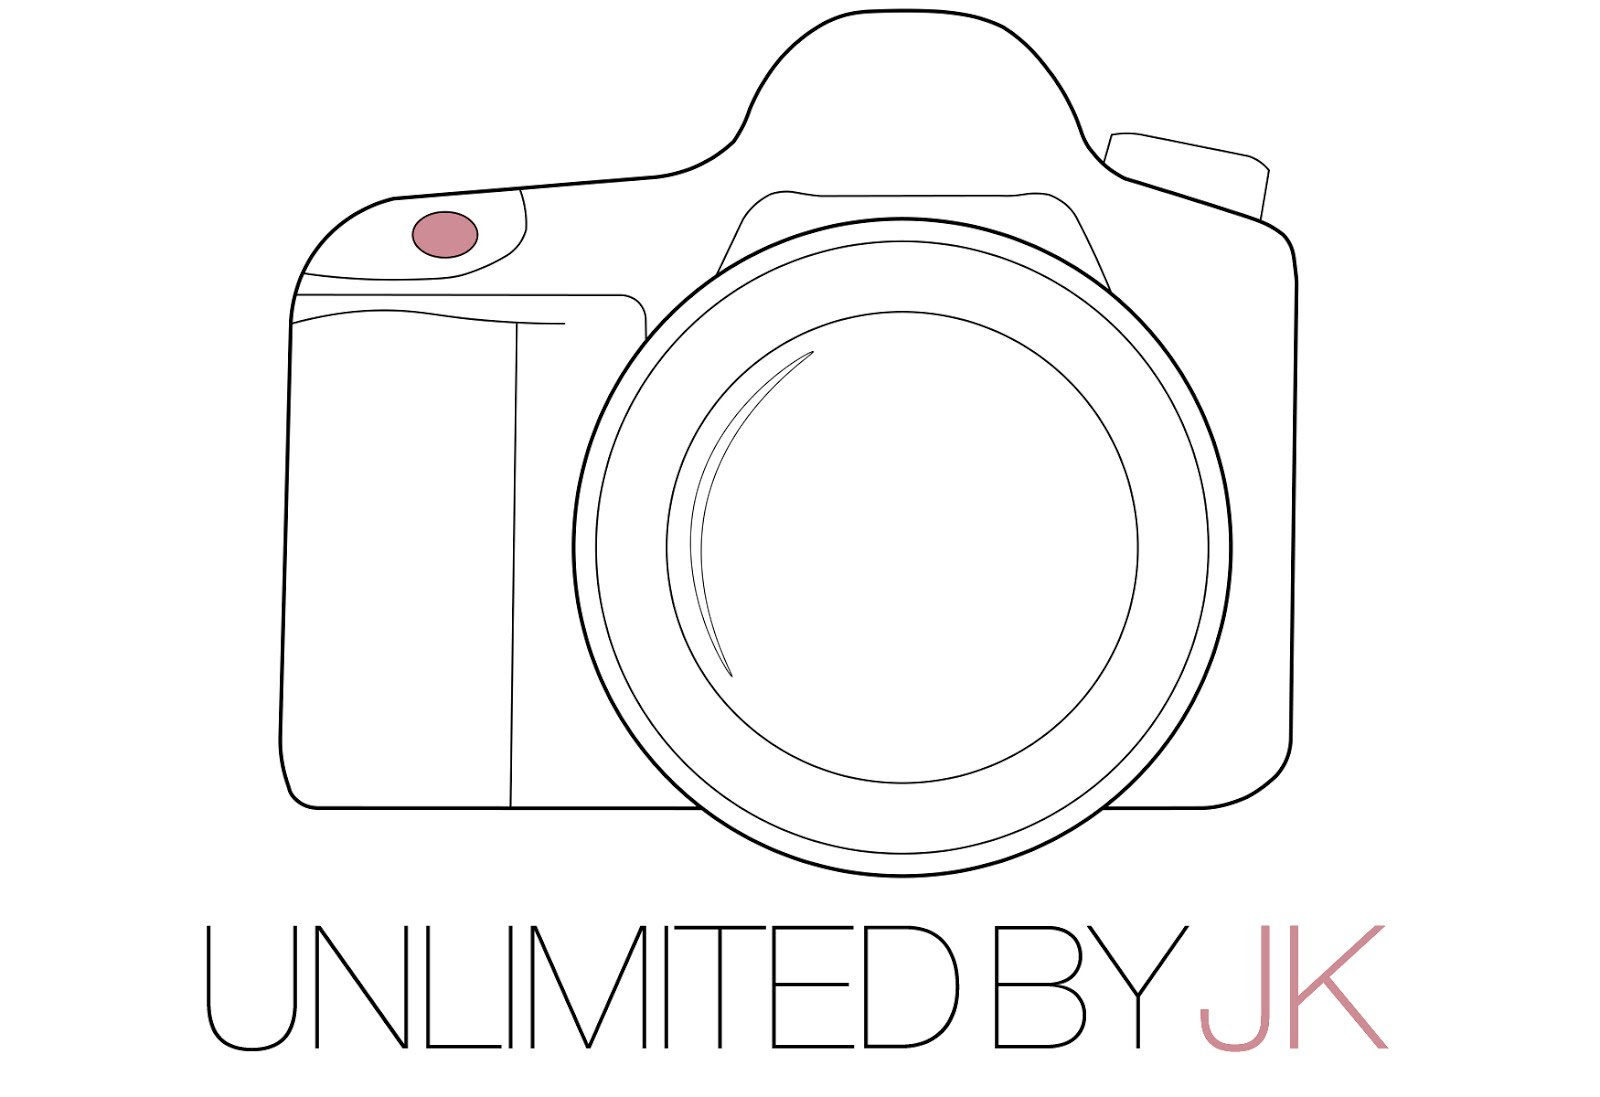 Unlimited by JK